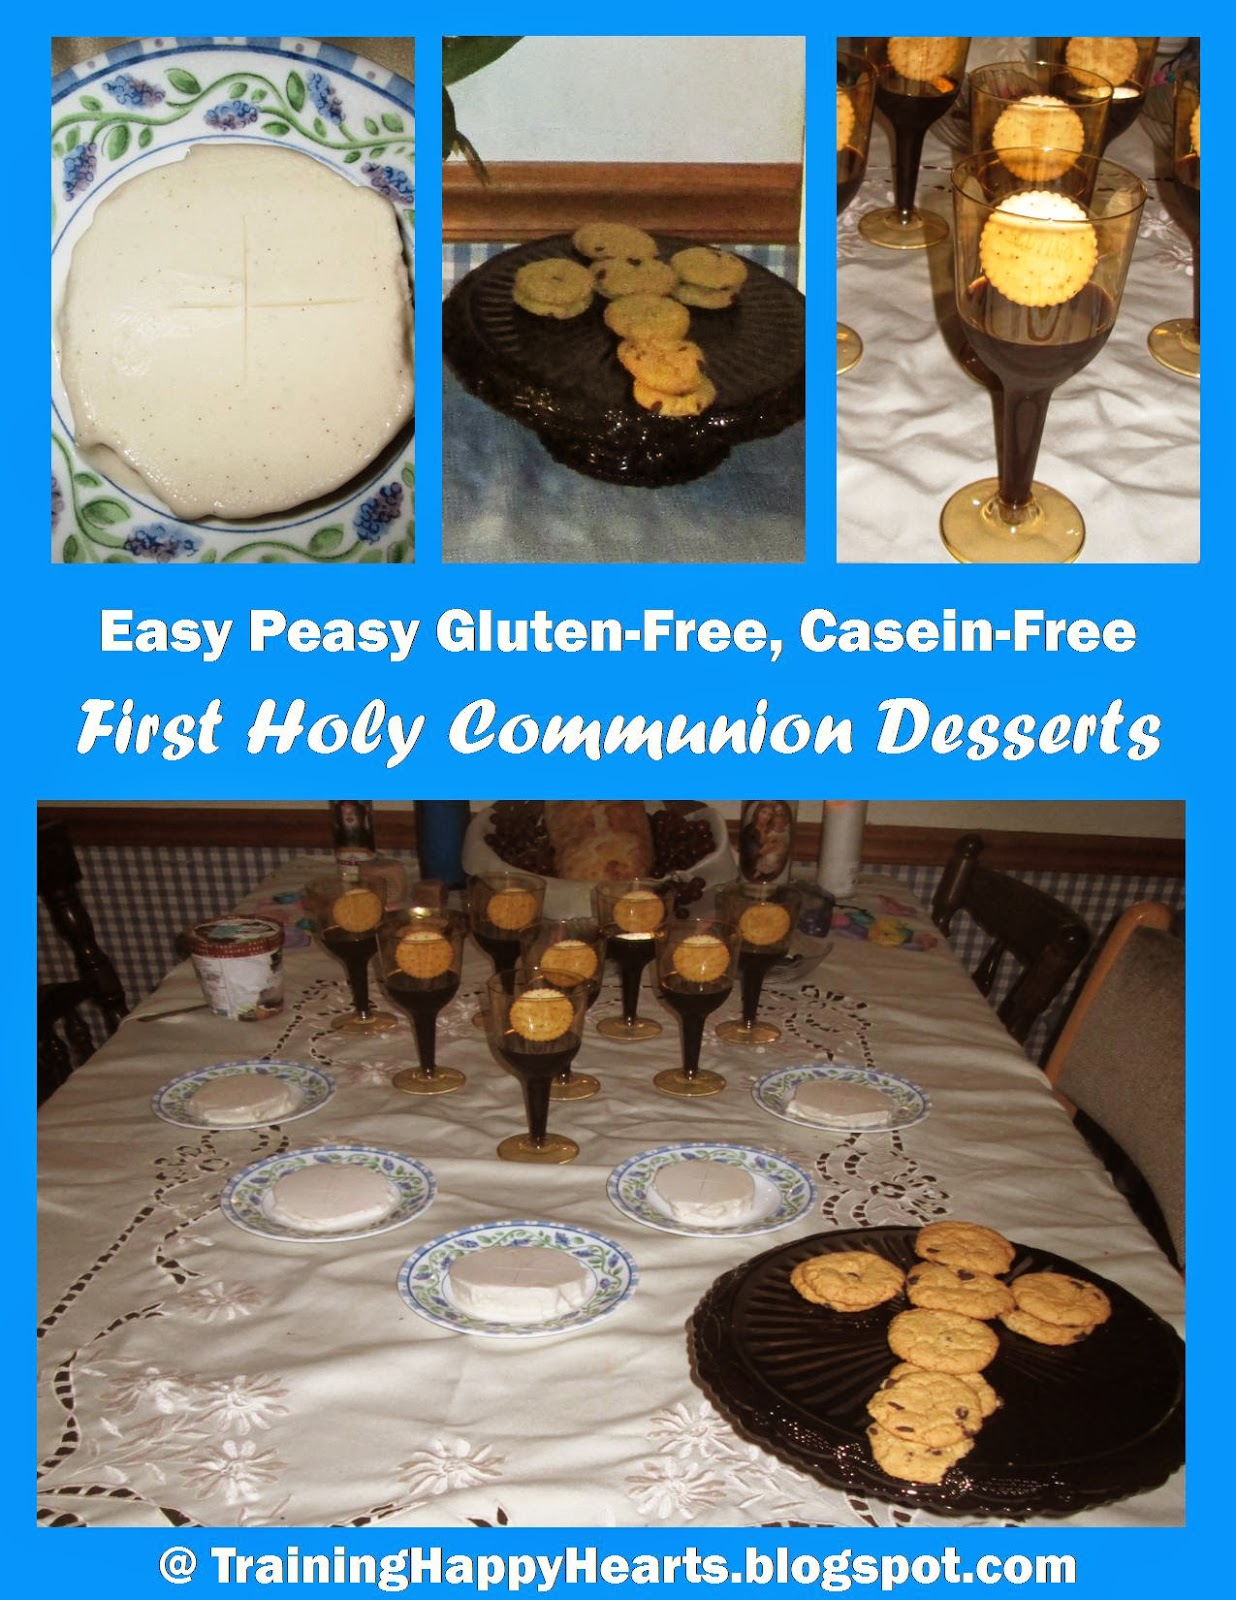 http://traininghappyhearts.blogspot.com/2014/05/no-fuss-gfcf-first-holy-communion.html